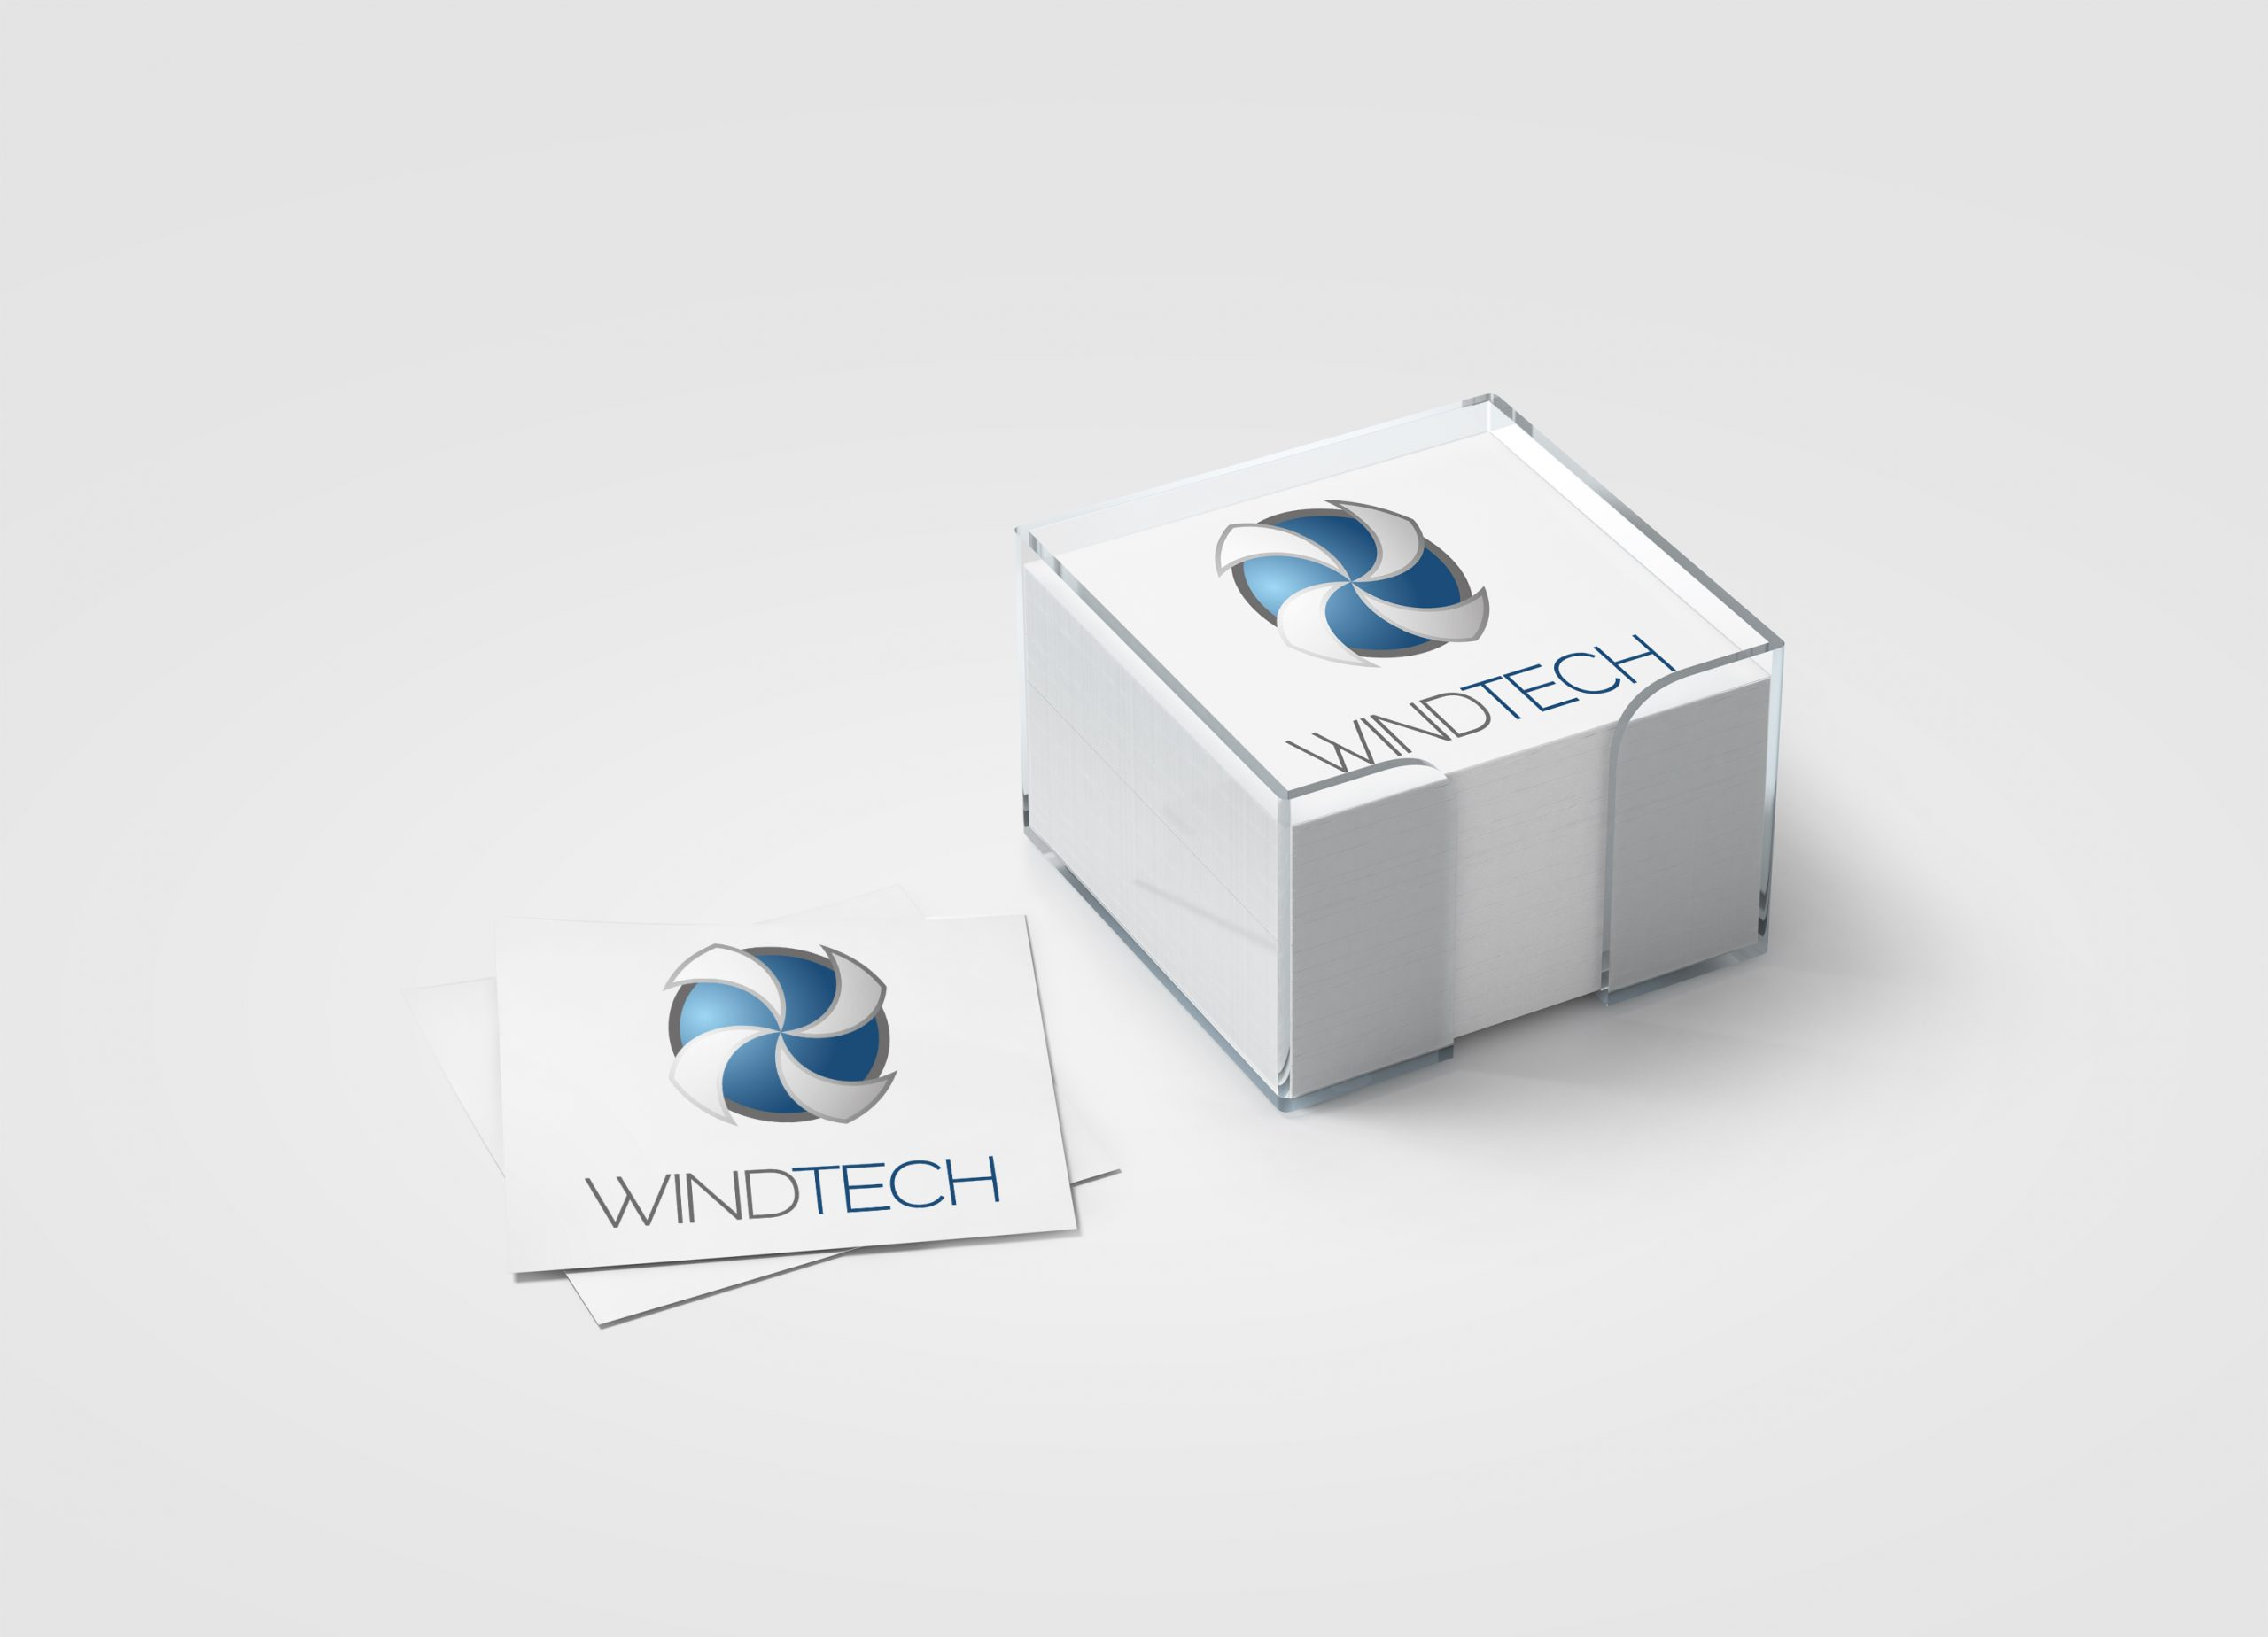 Windtech-logo-Template